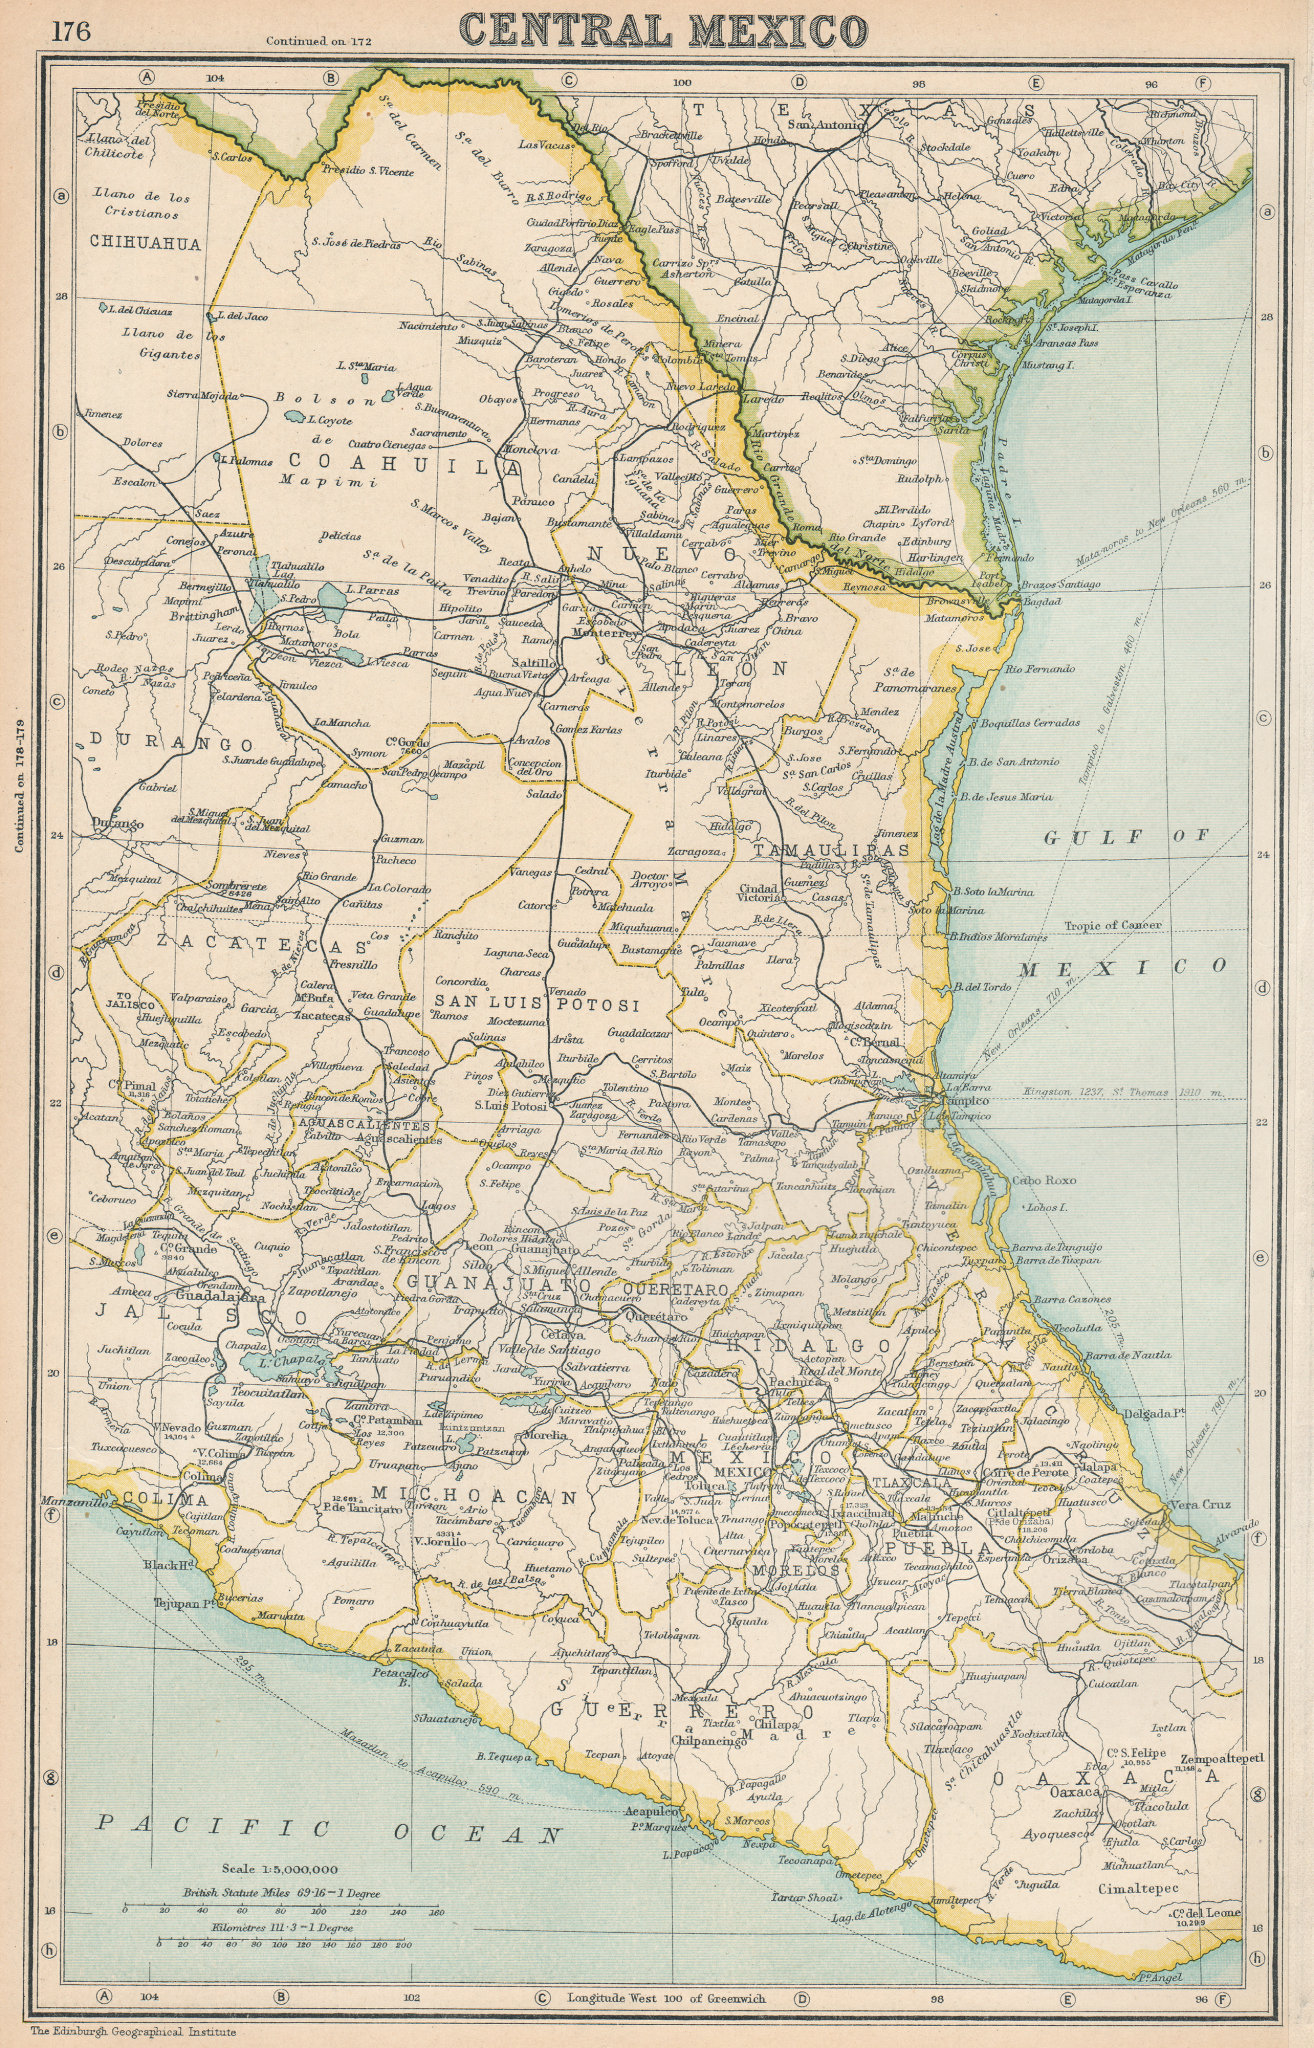 Associate Product MEXICO. Central Mexico showing states. BARTHOLOMEW 1924 old vintage map chart